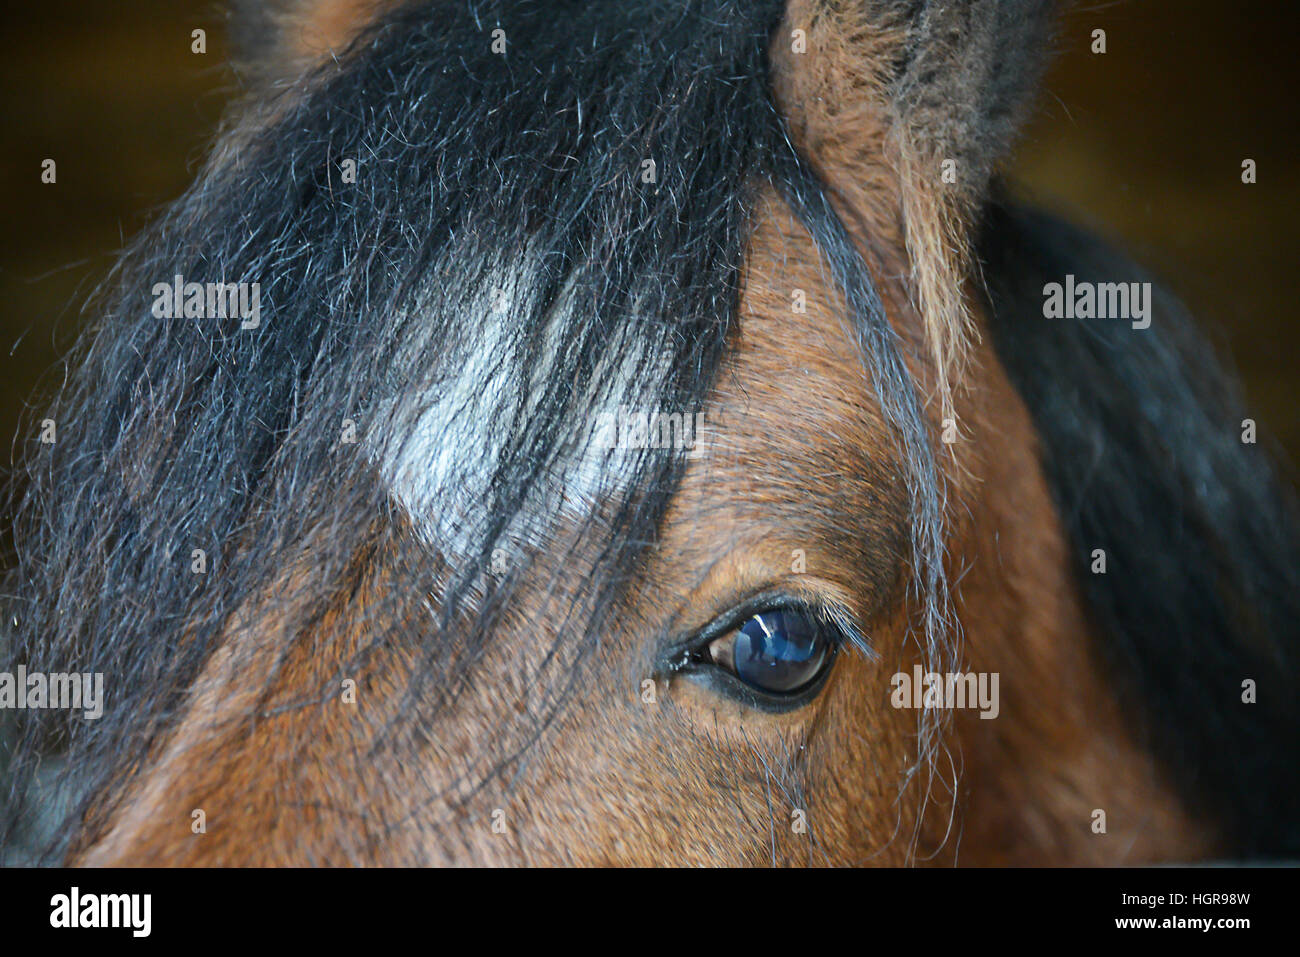 Bay horse eye close up - Stock Image